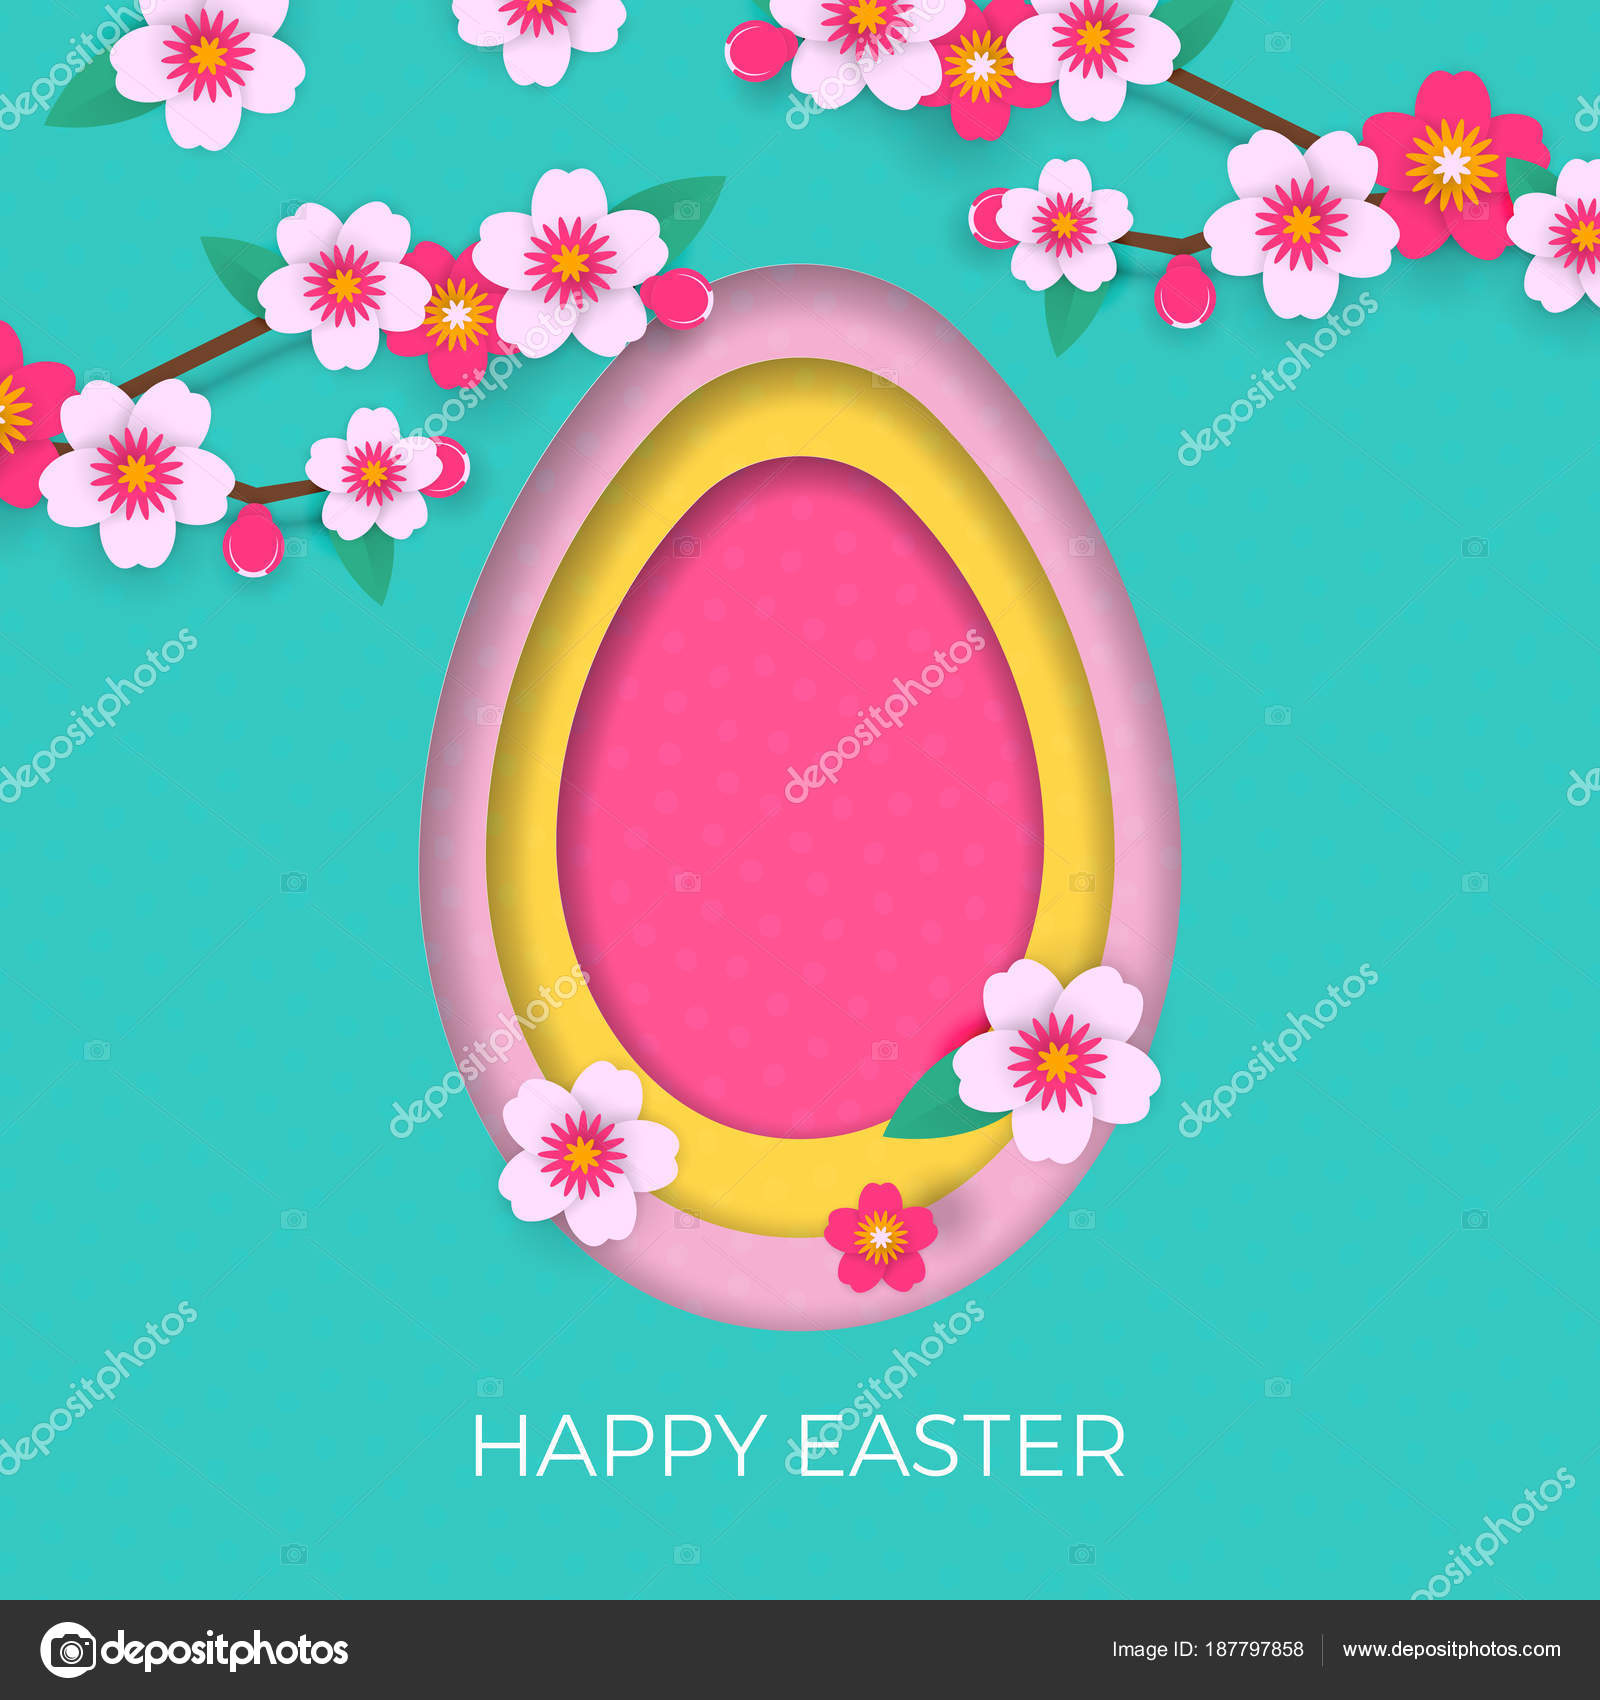 Happy Easter Greeting Card Of Egg Paper Cut And Spring Flowers For